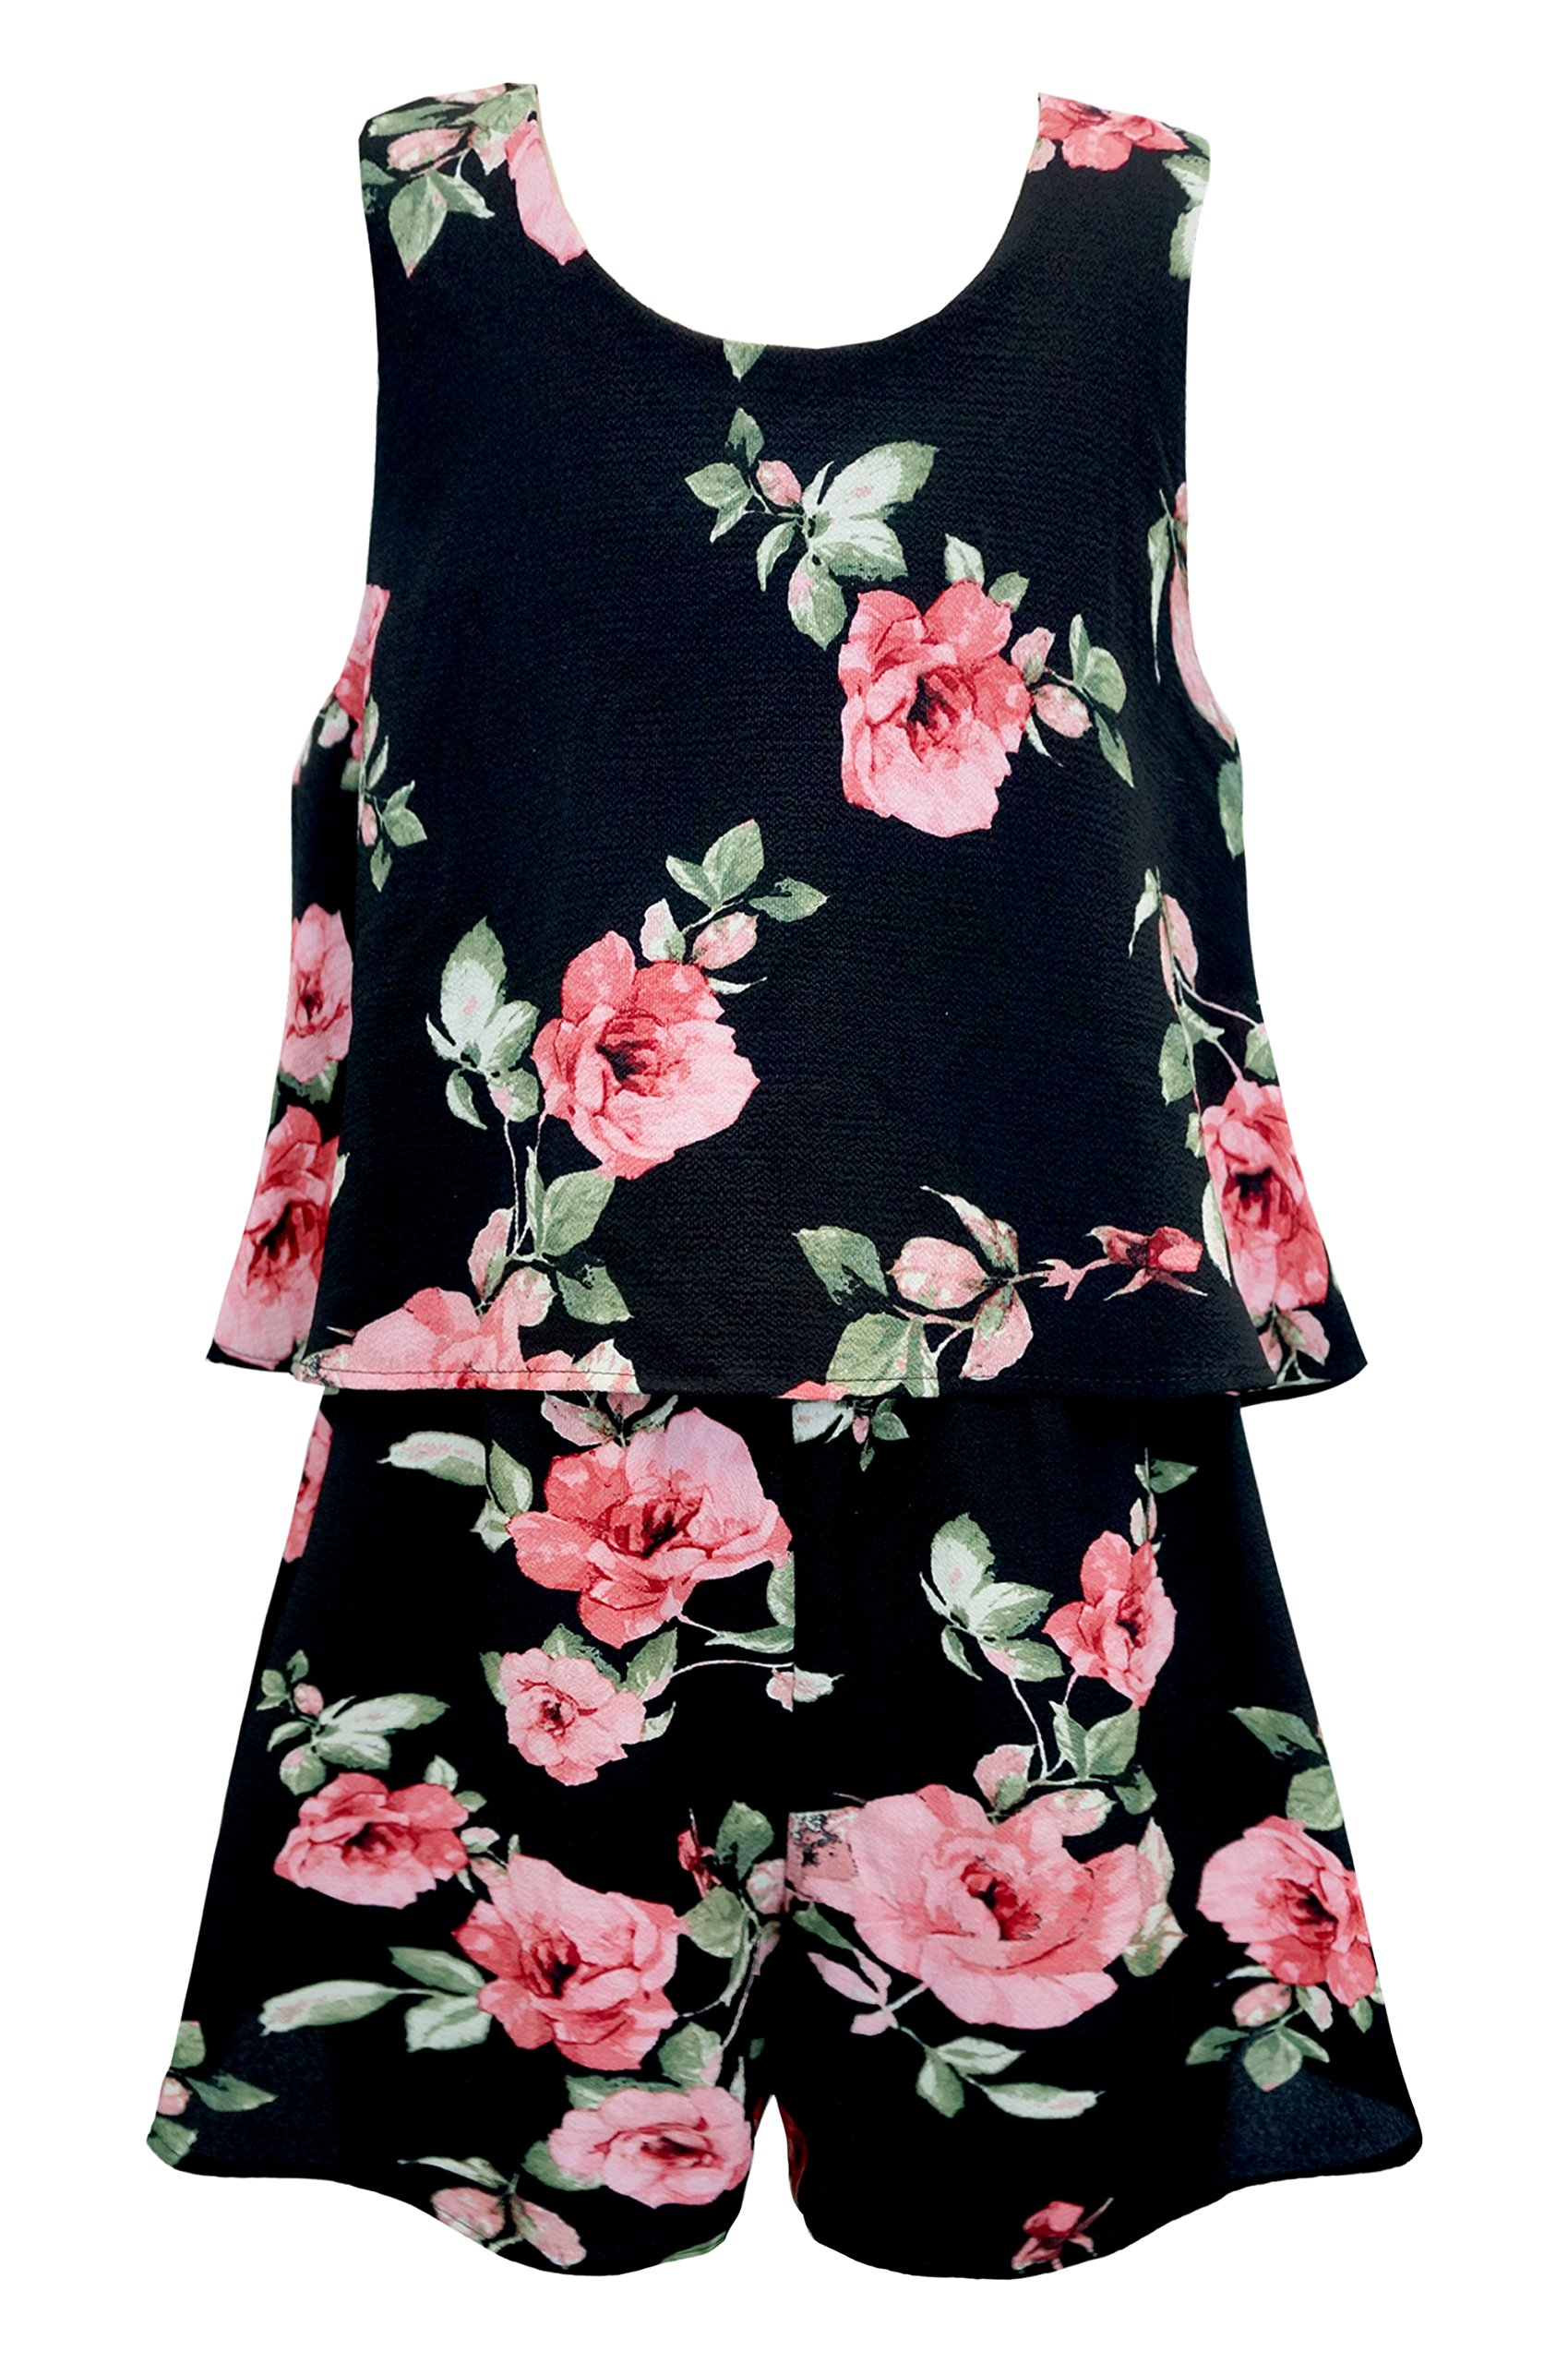 41dcabbe104 Get Quotations · Truly Me Big Girls Tween Sweet Floral Romper (Many  Options)